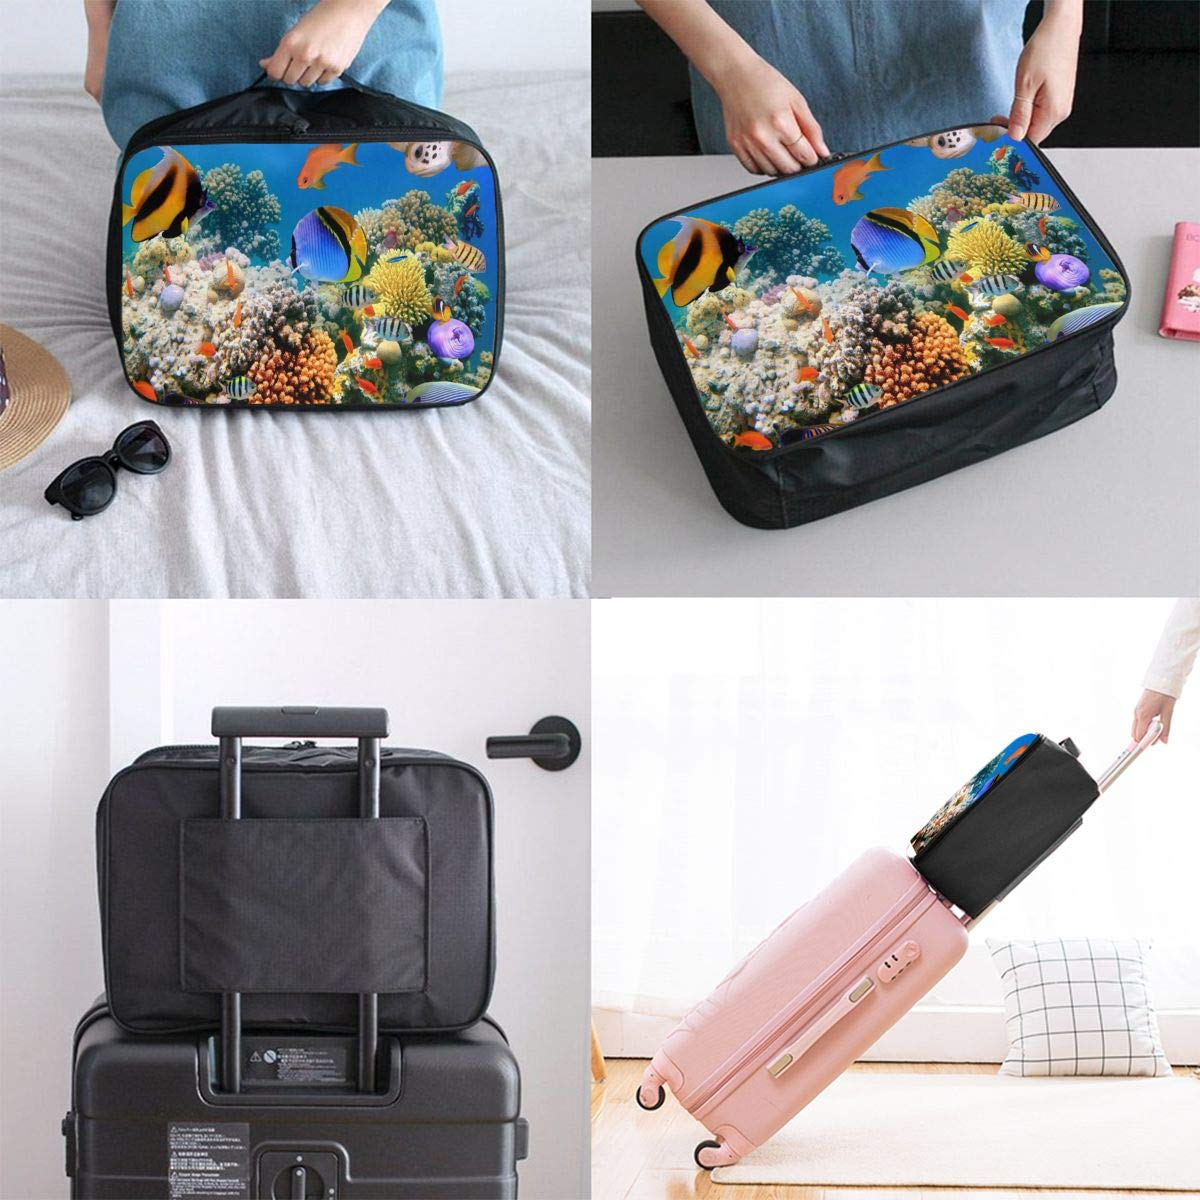 SSZW Colorful Underwater World Travel Duffel Bag Waterproof Fashion Lightweight Large Capacity Portable Luggage Bag